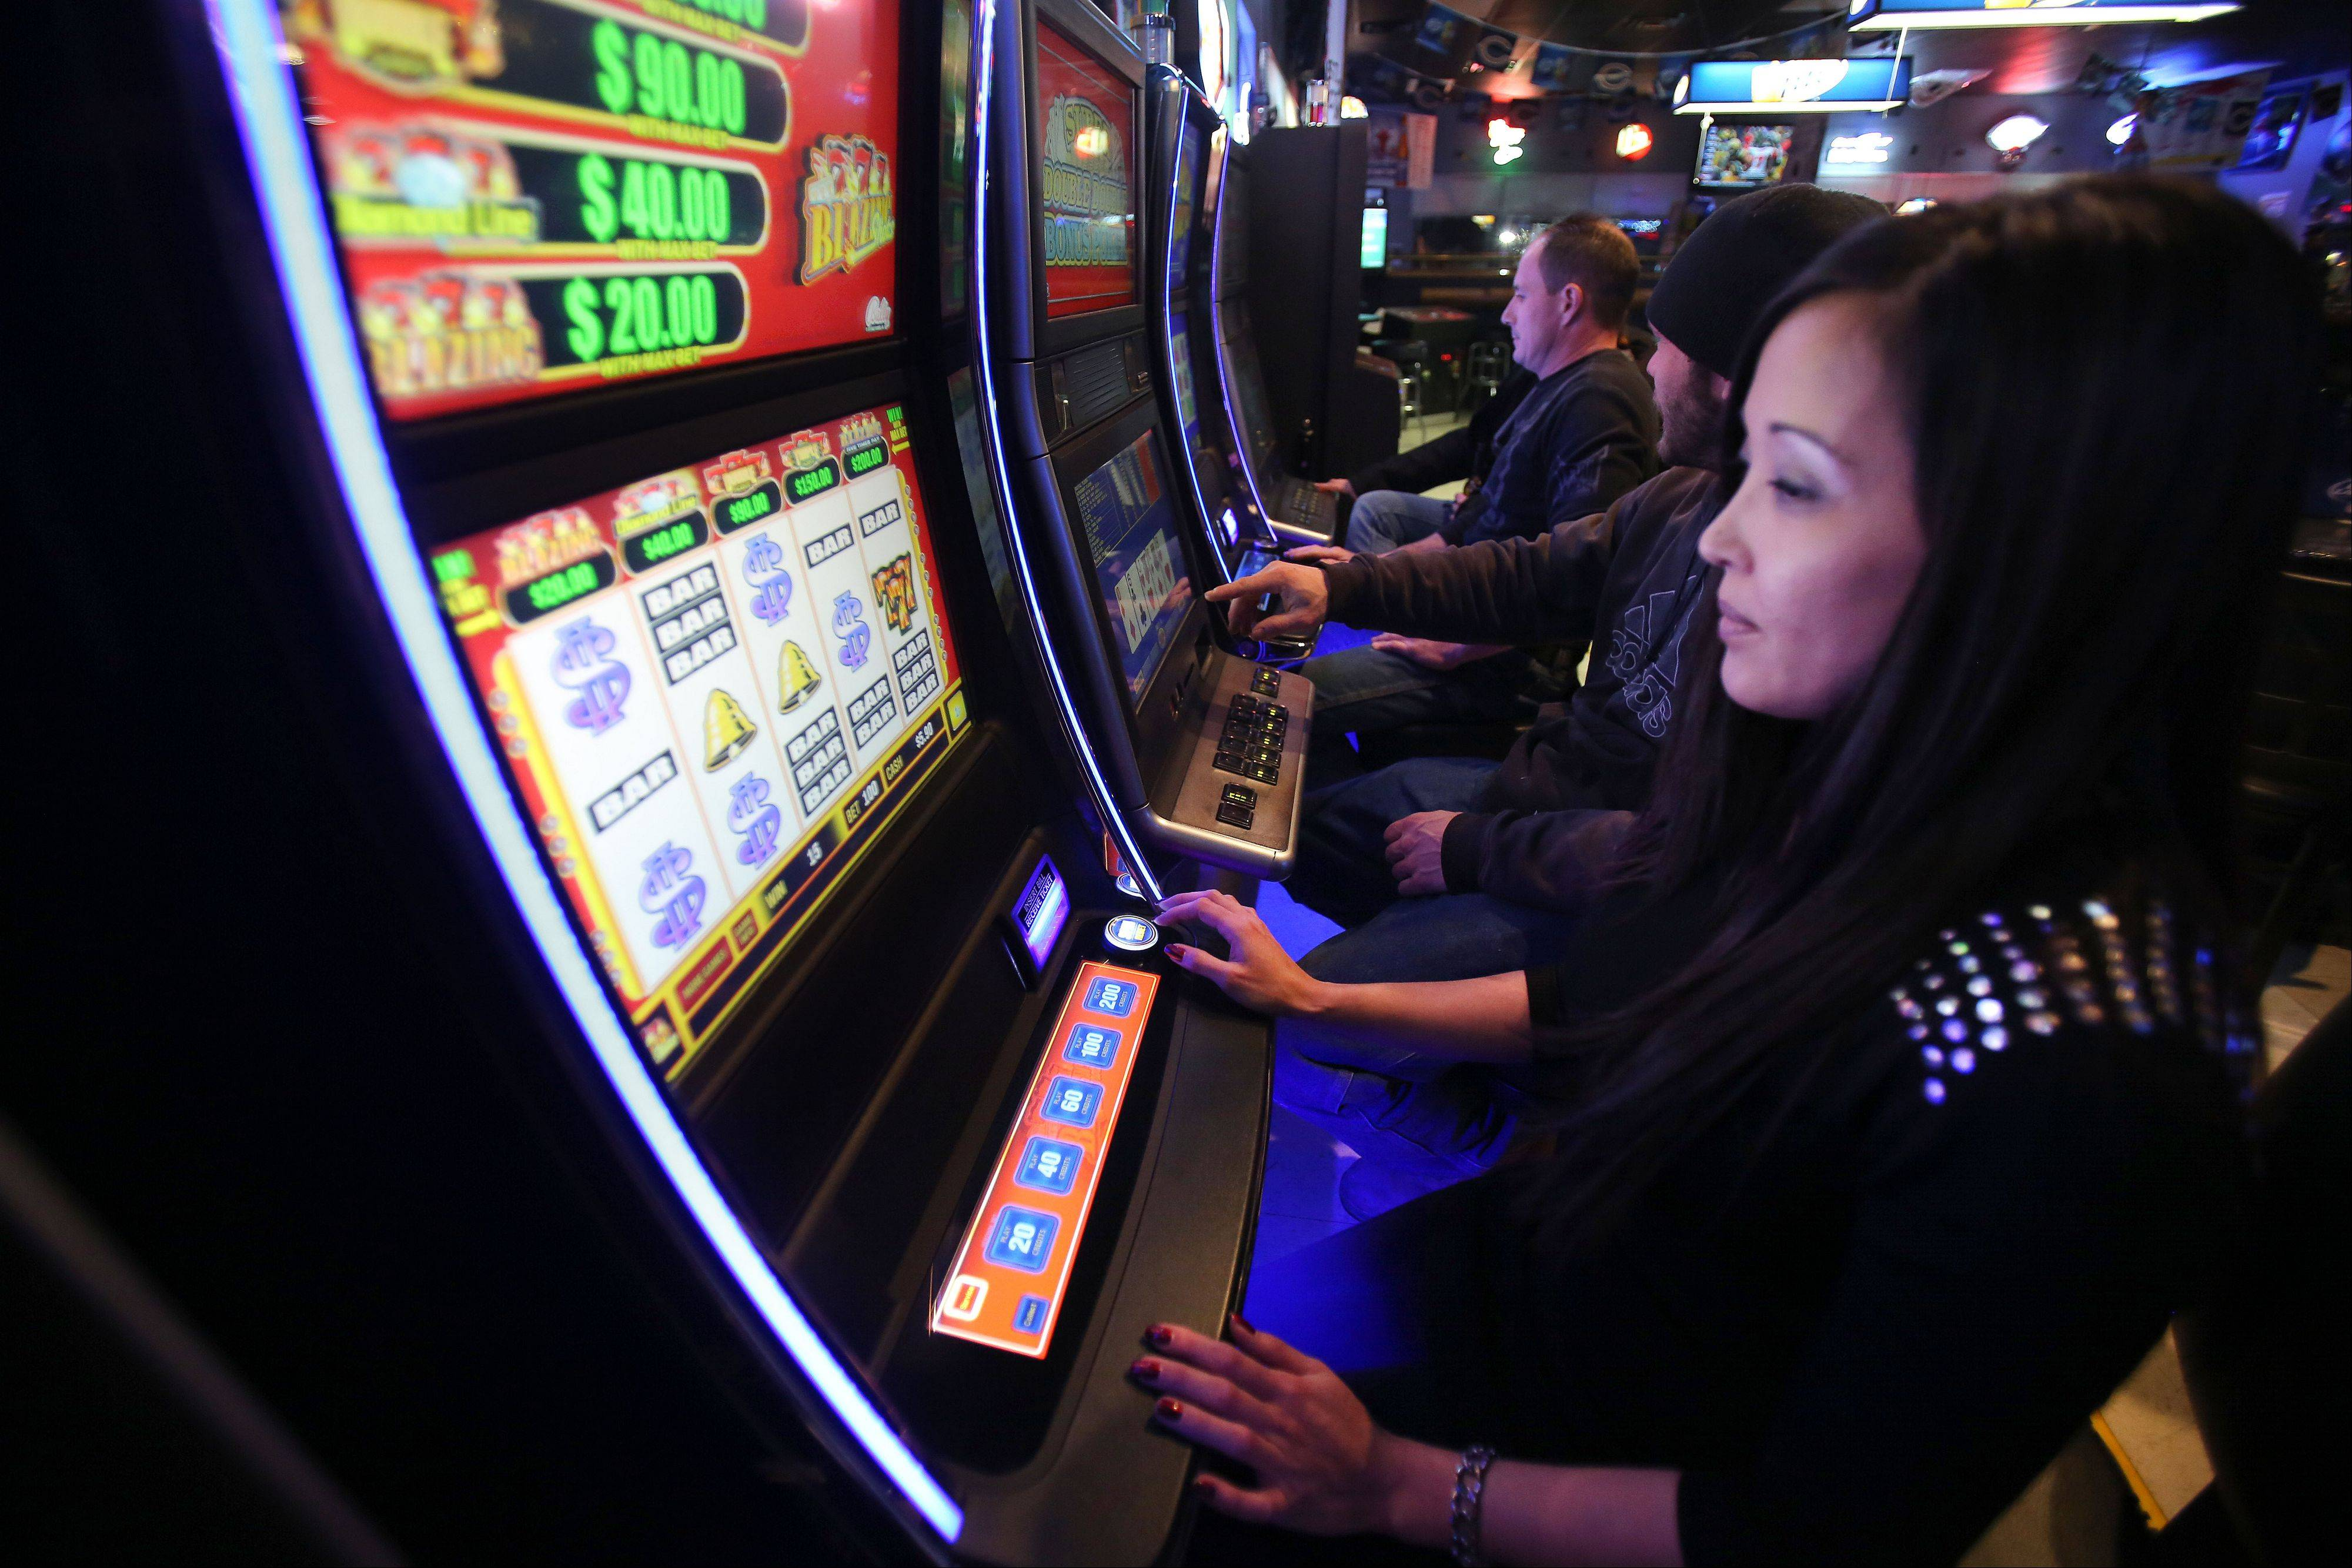 Kim Kitahata, of Lakemoor, plays a video gambling game at J's Sports Bar in Fox Lake. Village officials said they hit the jackpot by collecting more than $93,000 in revenue in the first year video gambling machines operated.